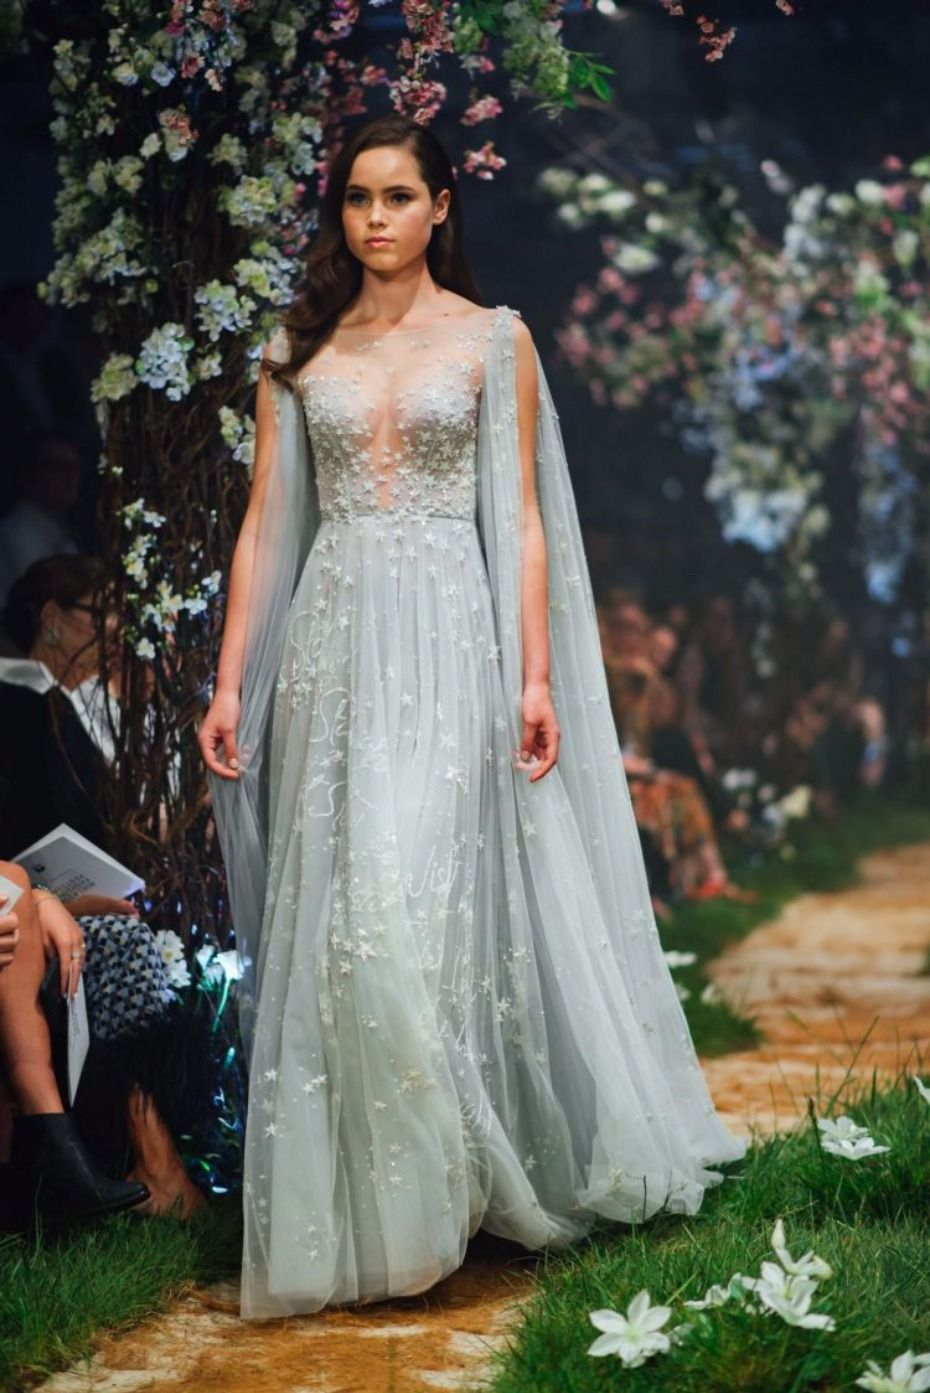 Disney Style Just Shared The Paolo Sebastian Spring Summer 2018 Show Collection Of Inspired Gowns And We Were Floored They Re All Subtle Nods To